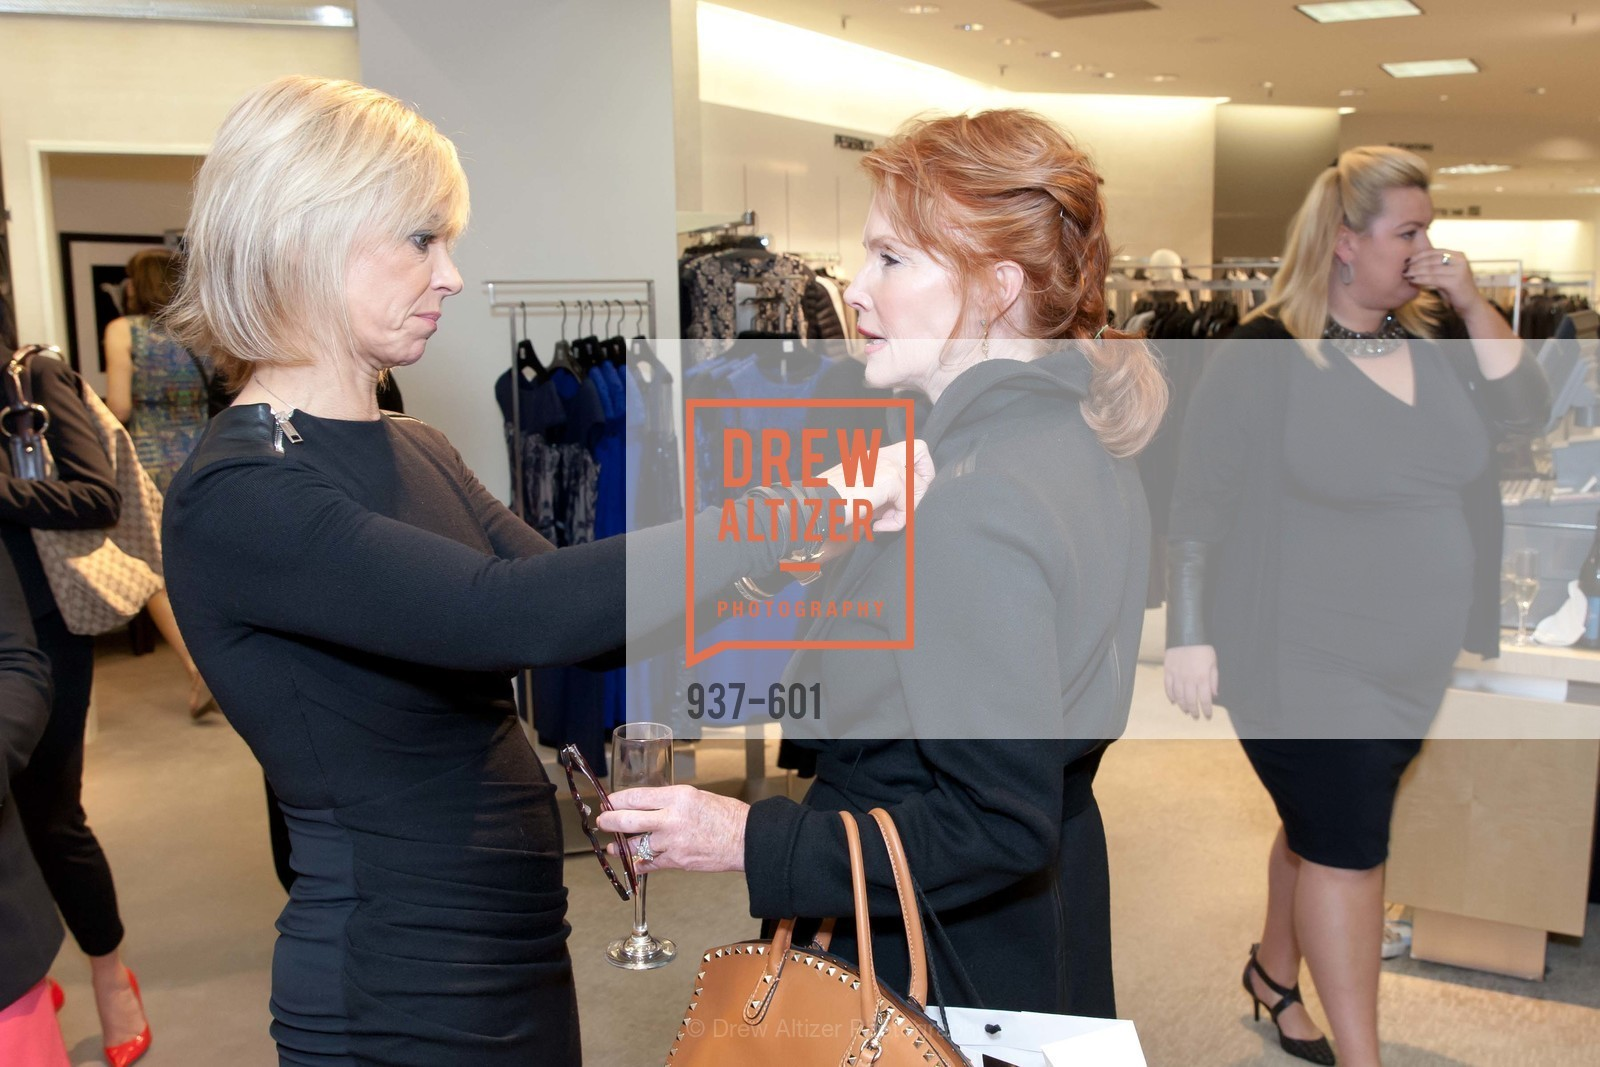 Avril Graham, Maureen Herr, SAKS FIFTH AVENUE and HARPER'S BAZAAR Host the San Francisco Yacht Club, US, October 9th, 2014,Drew Altizer, Drew Altizer Photography, full-service agency, private events, San Francisco photographer, photographer california